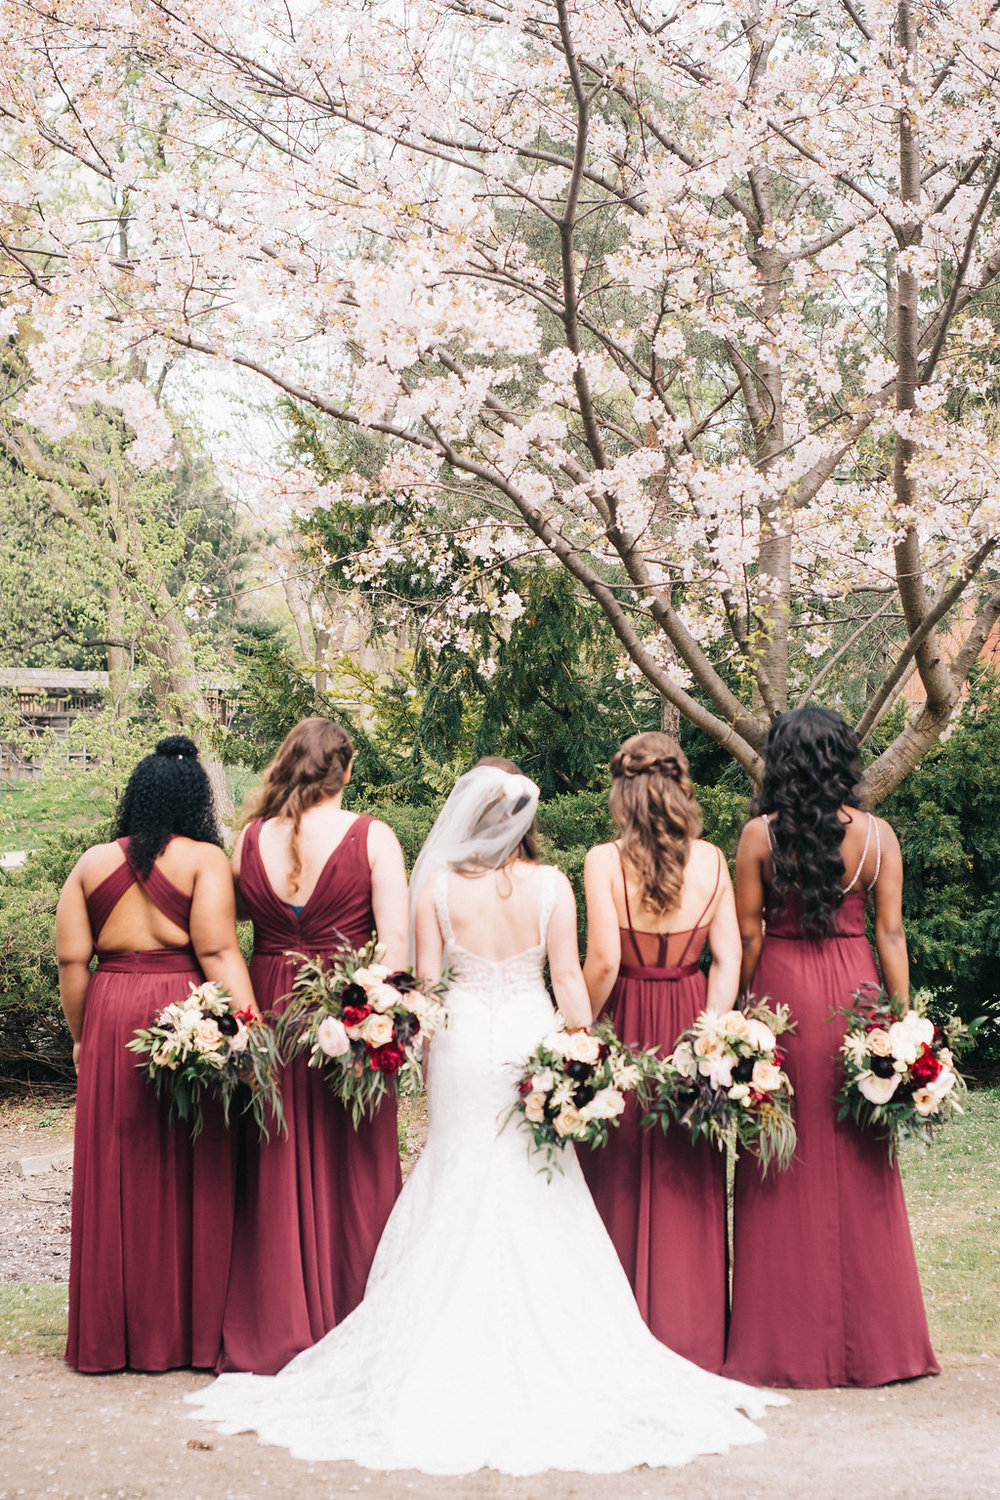 Bridesmaids dresses by David's Bridal